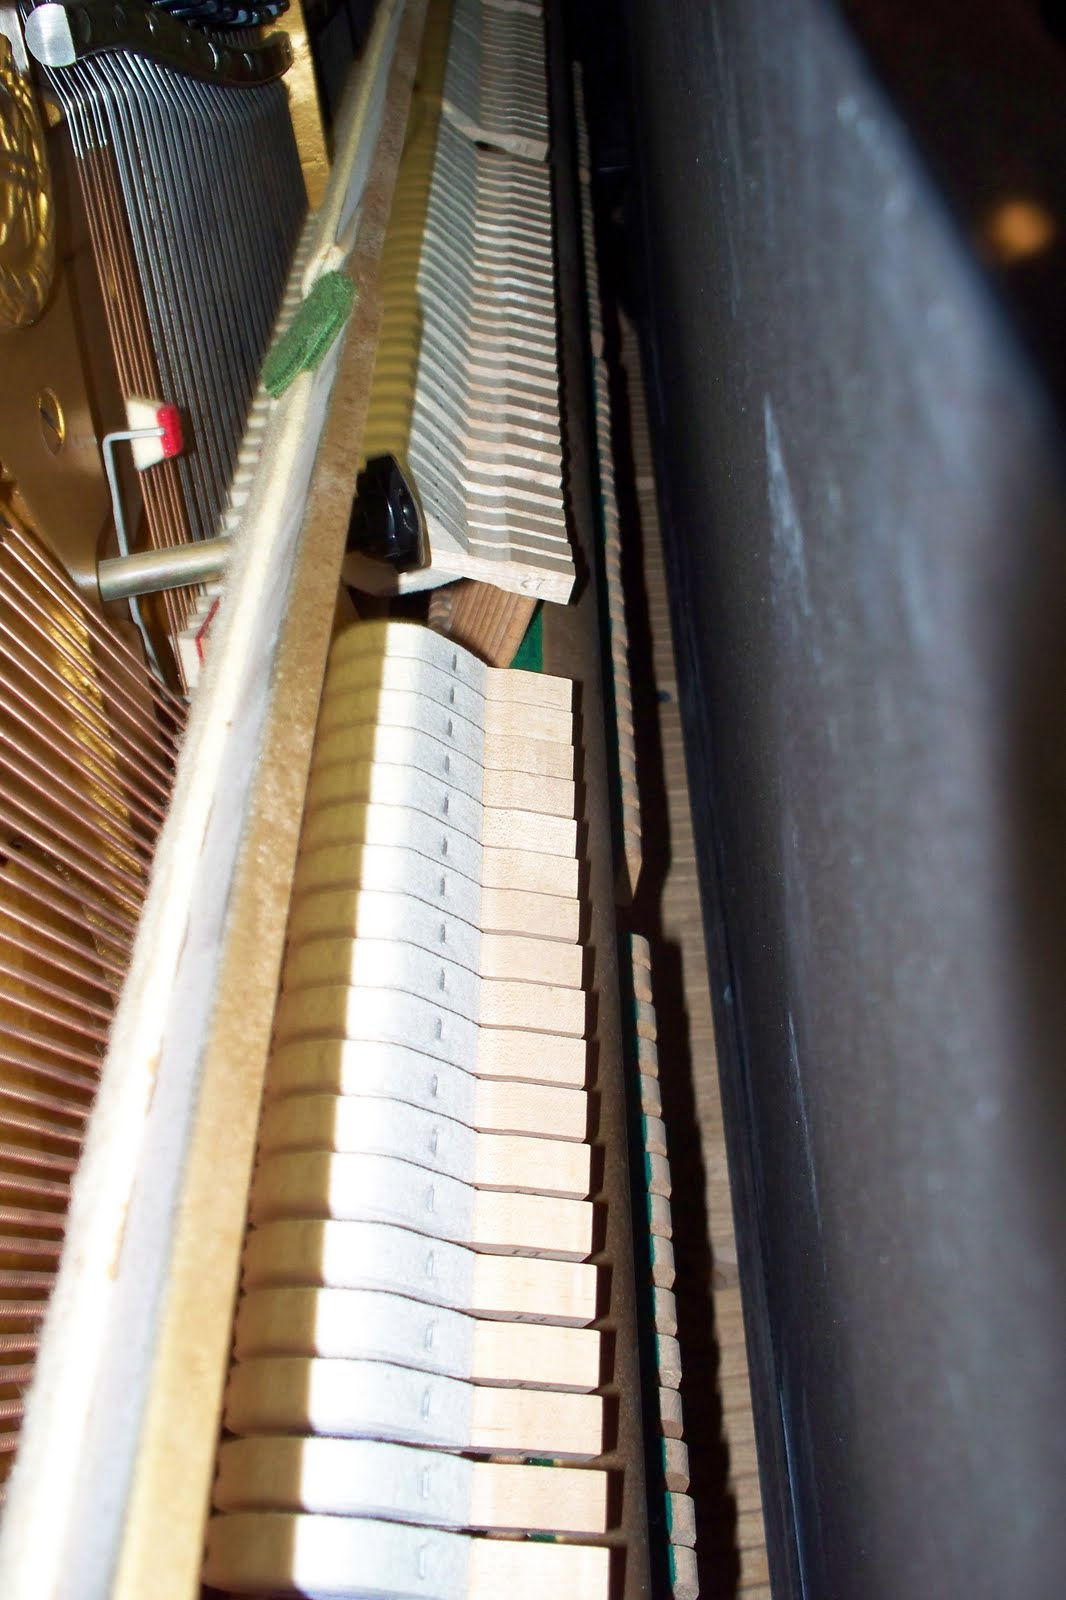 Ymaha U2 upright piano